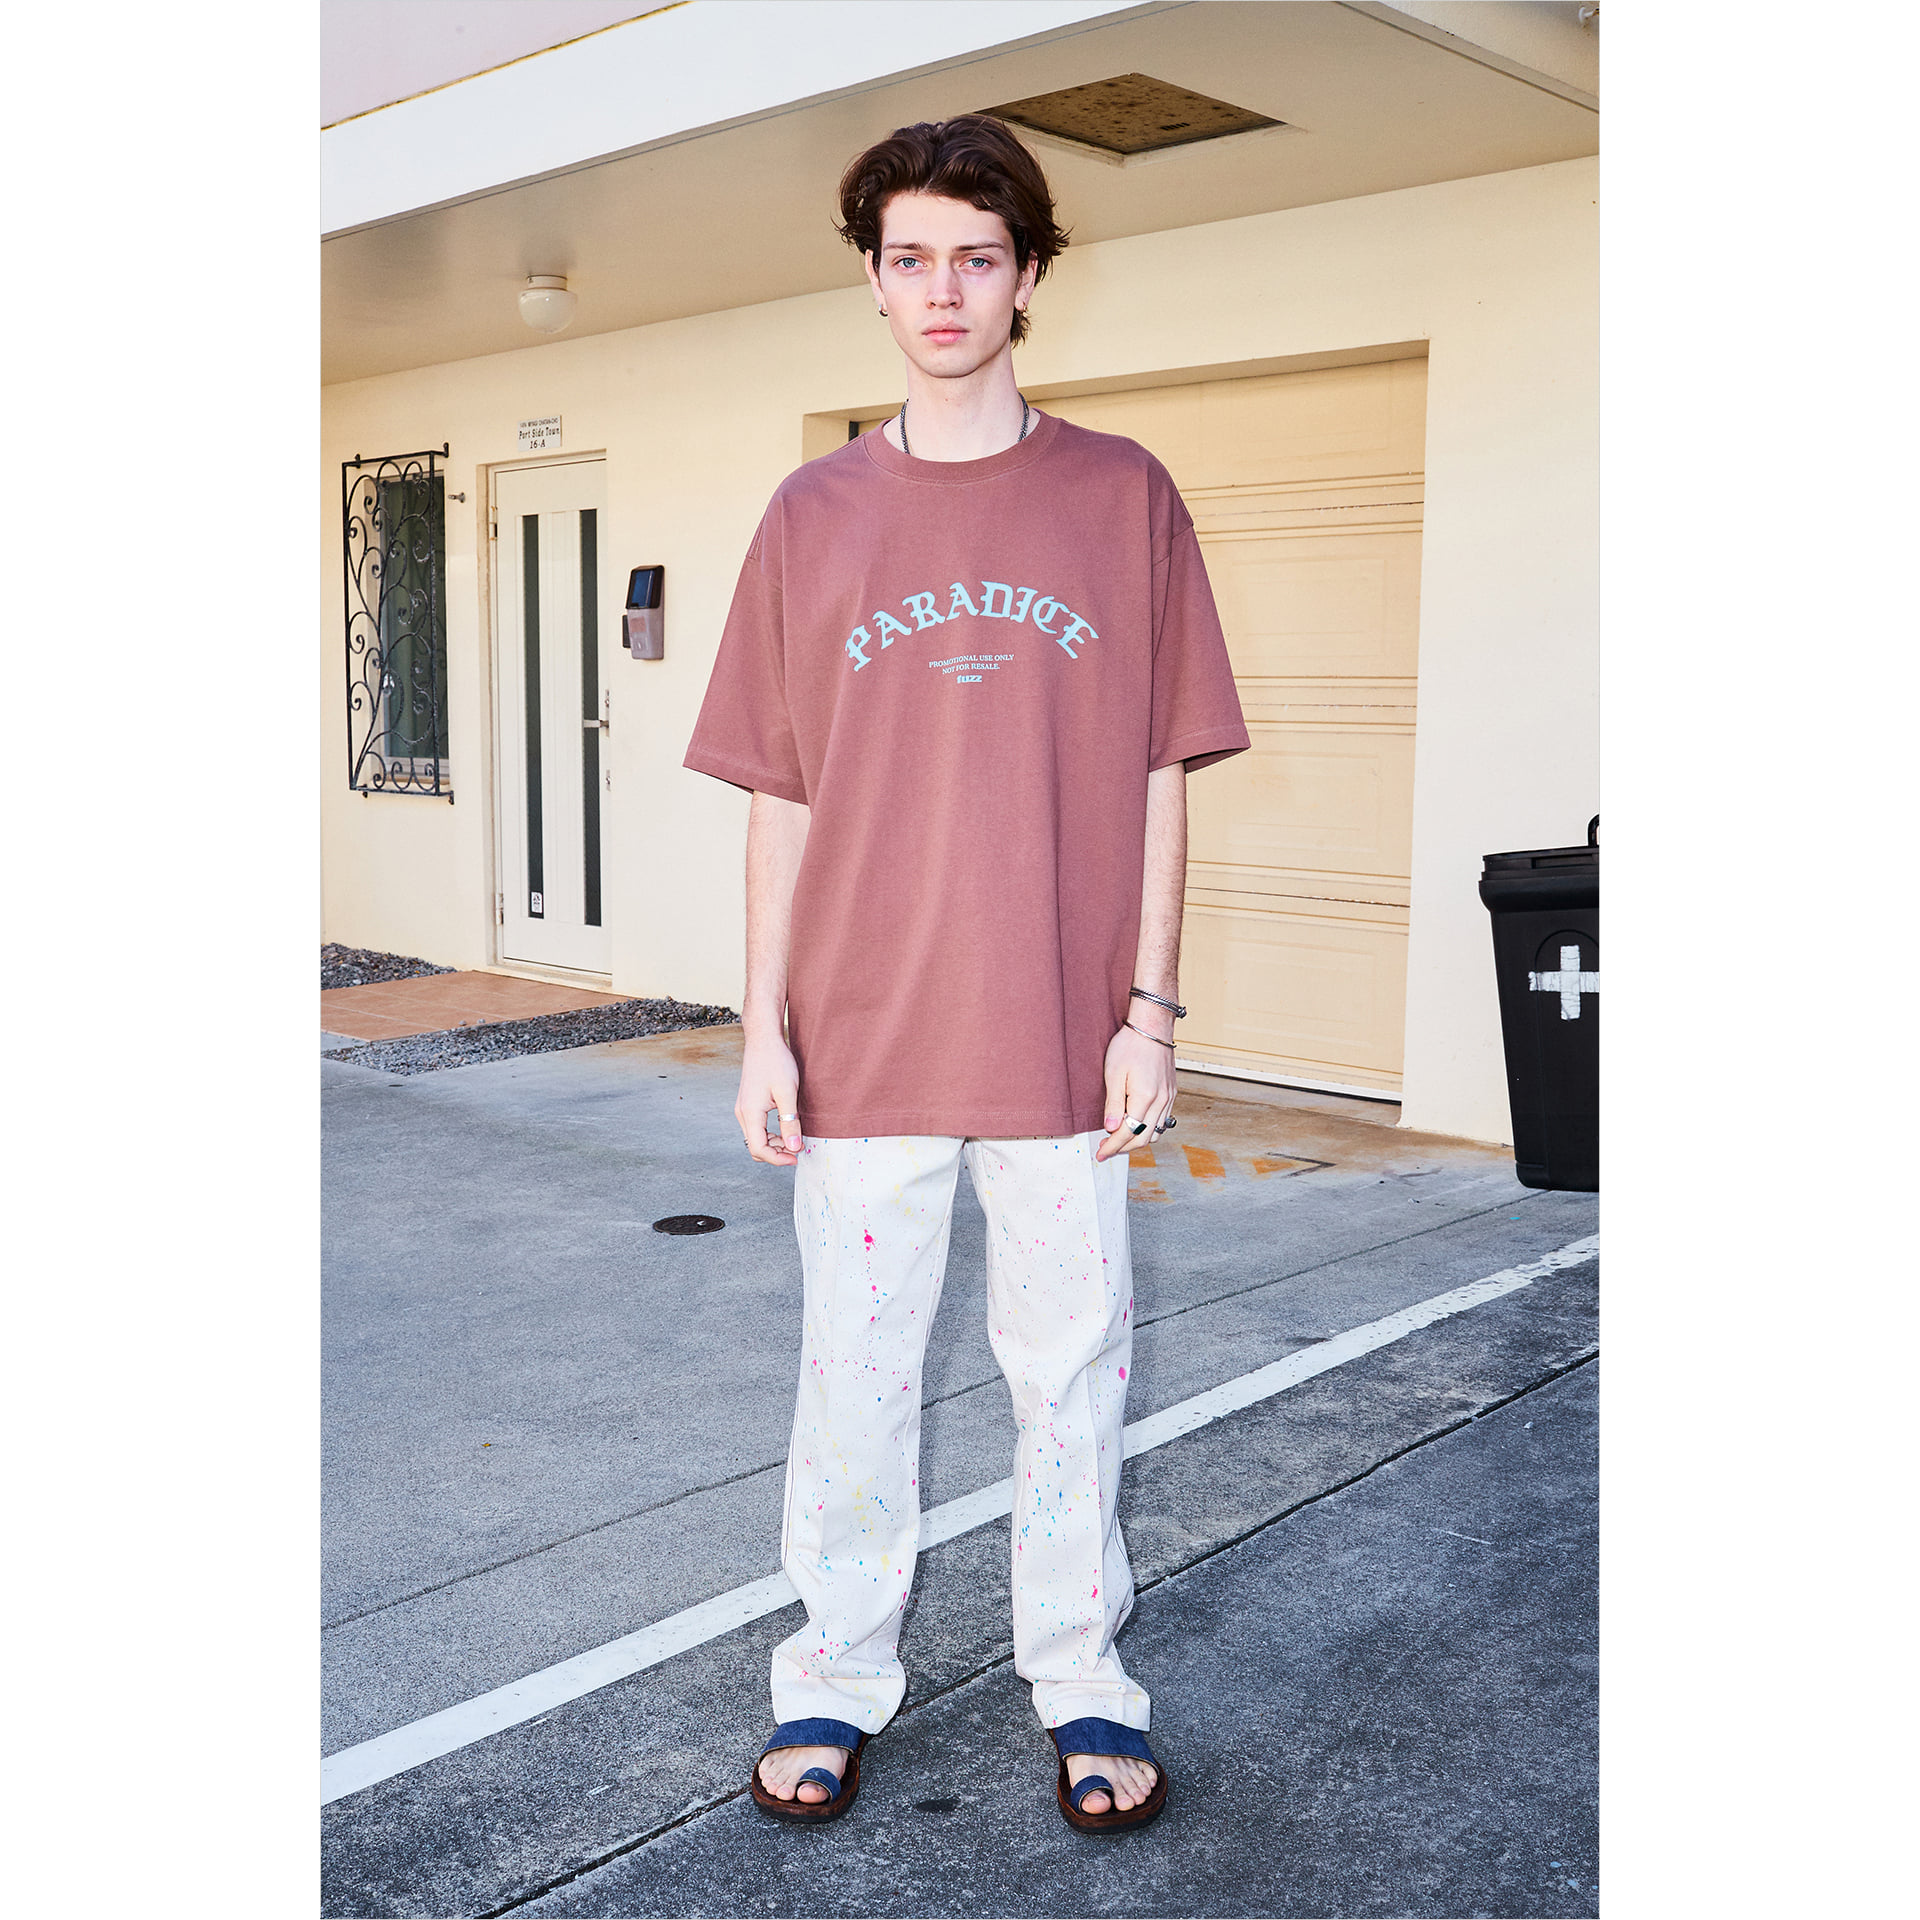 FUZZ ARCH PARADICE TEE milk brown